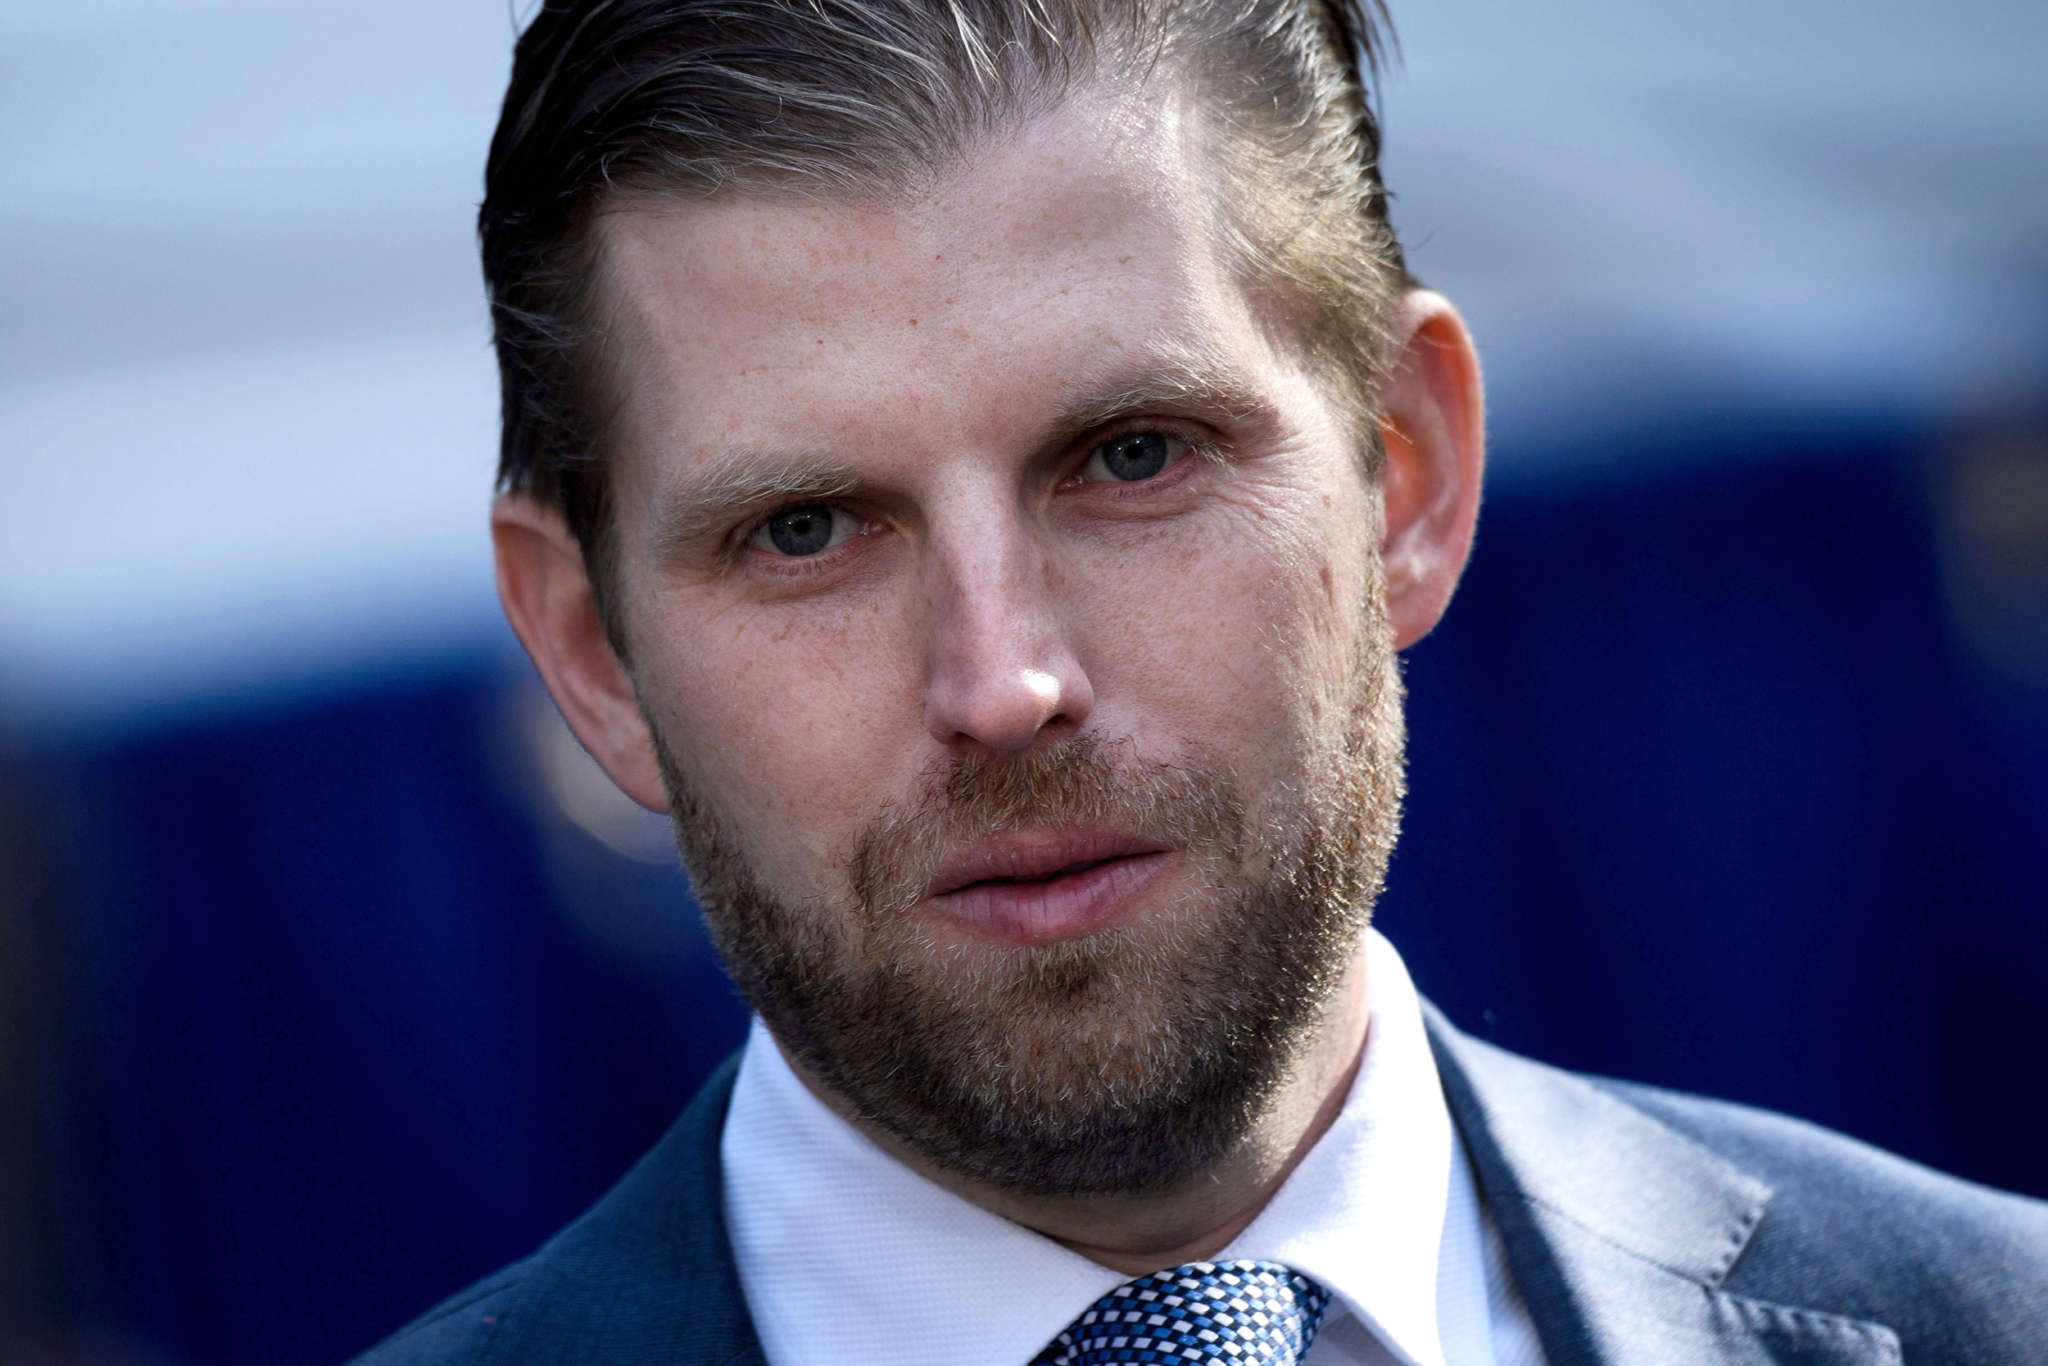 """""""eric-trump-seems-to-come-out-as-part-of-the-lgbt-community-and-social-media-raises-a-collective-eyebrow"""""""